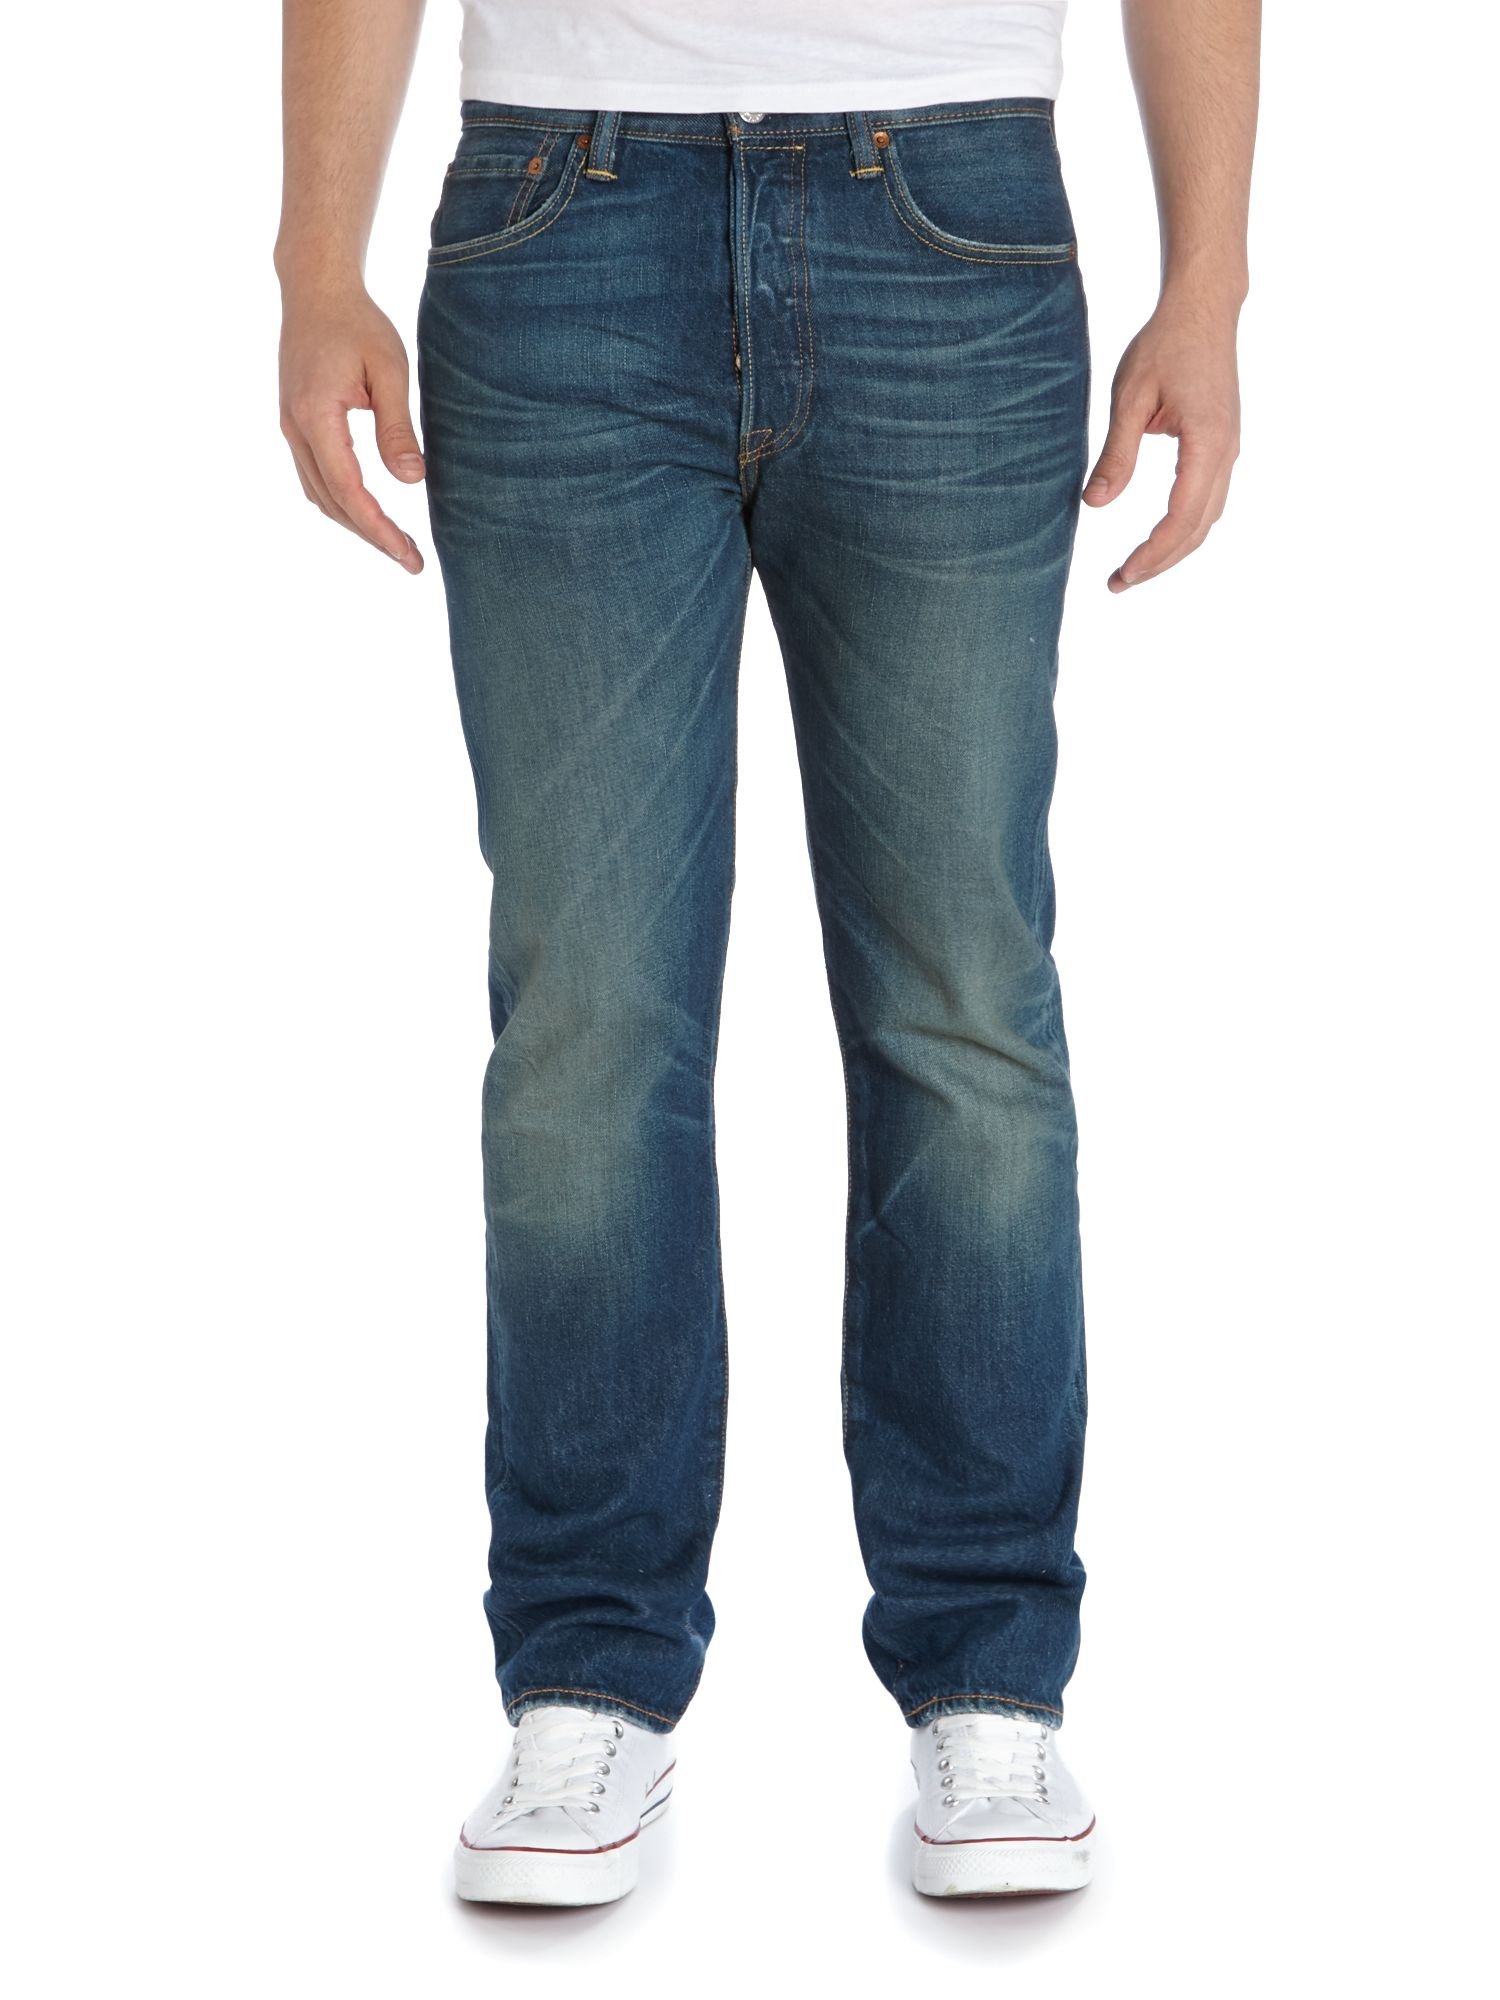 501 straight fit basic blues jeans